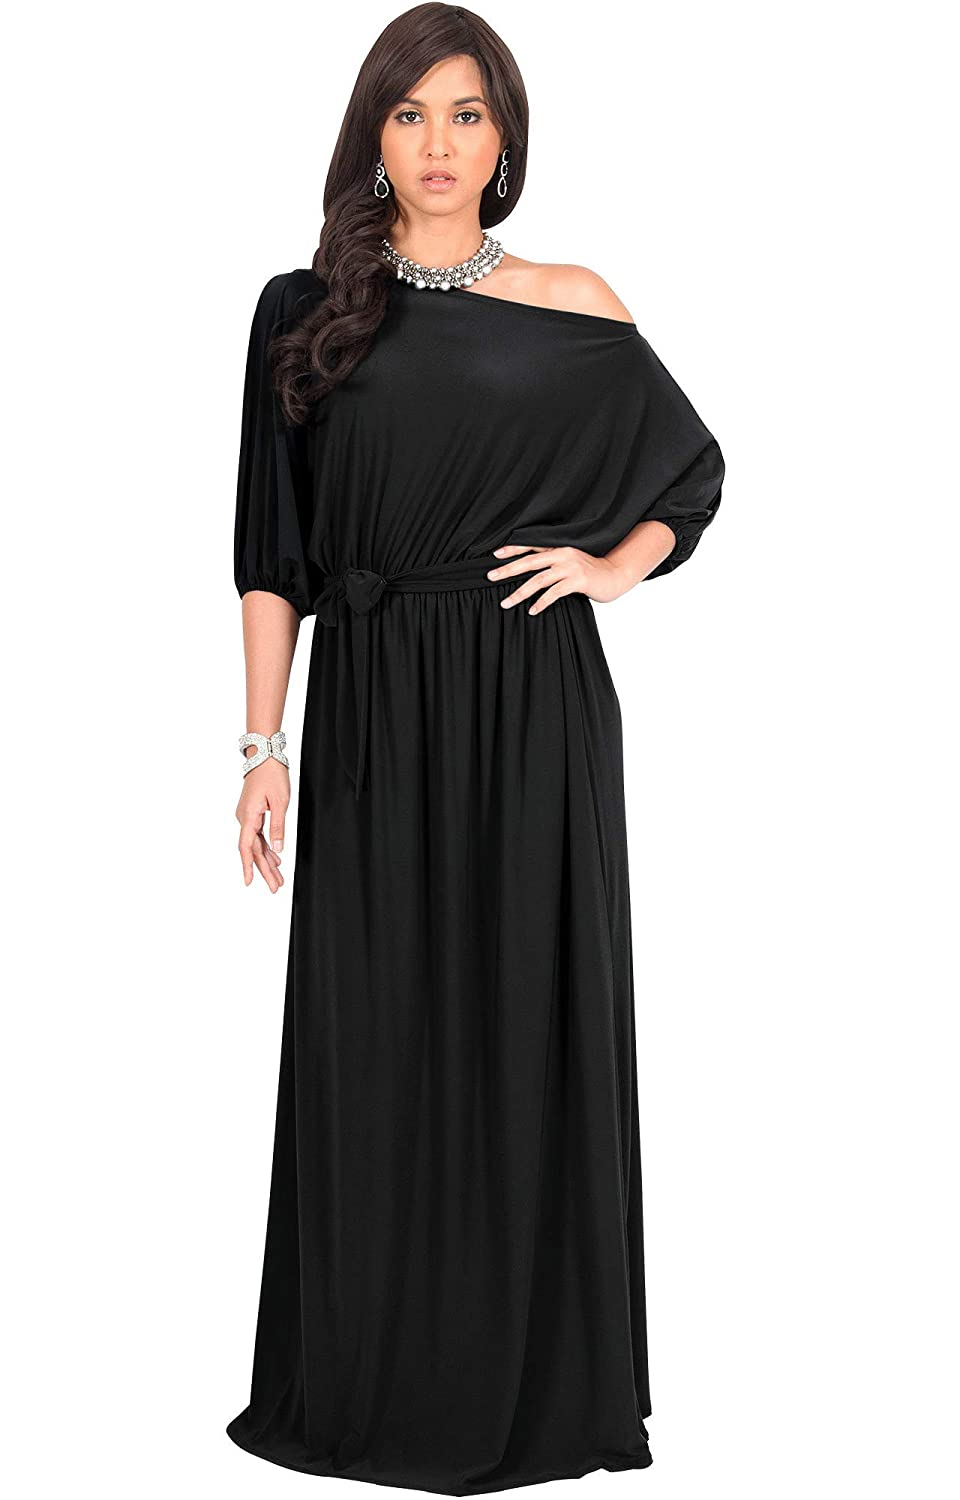 c19bd992551e23 Amazon.com  KOH KOH Womens Long Sexy One Shoulder Flowy Casual 3 4 Short  Sleeve Maxi Dress  Clothing